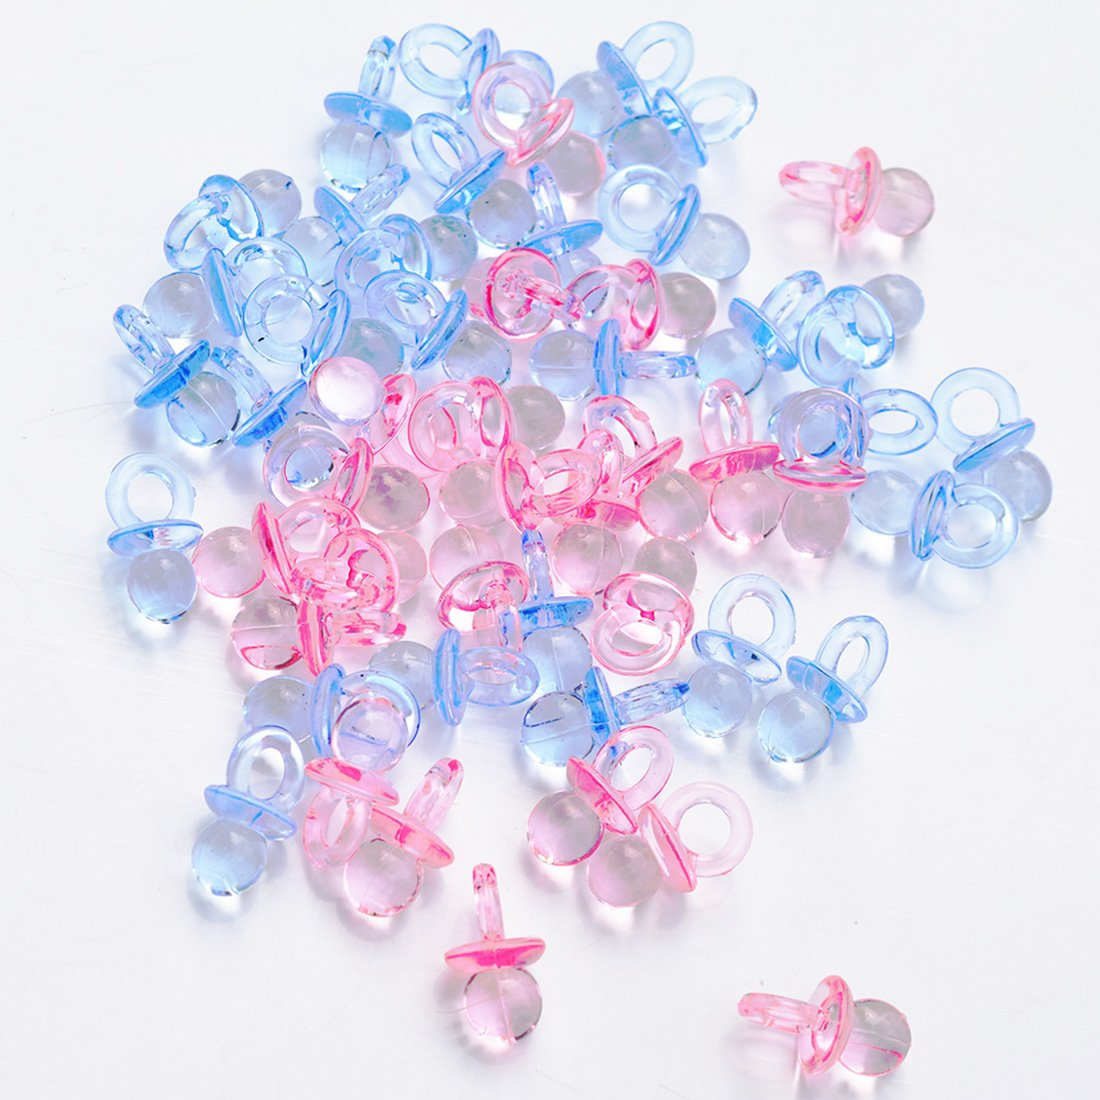 144 Pcs Mini Acrylic Pacifiers Table Scatter Confetti (Pink Blue Mixed)